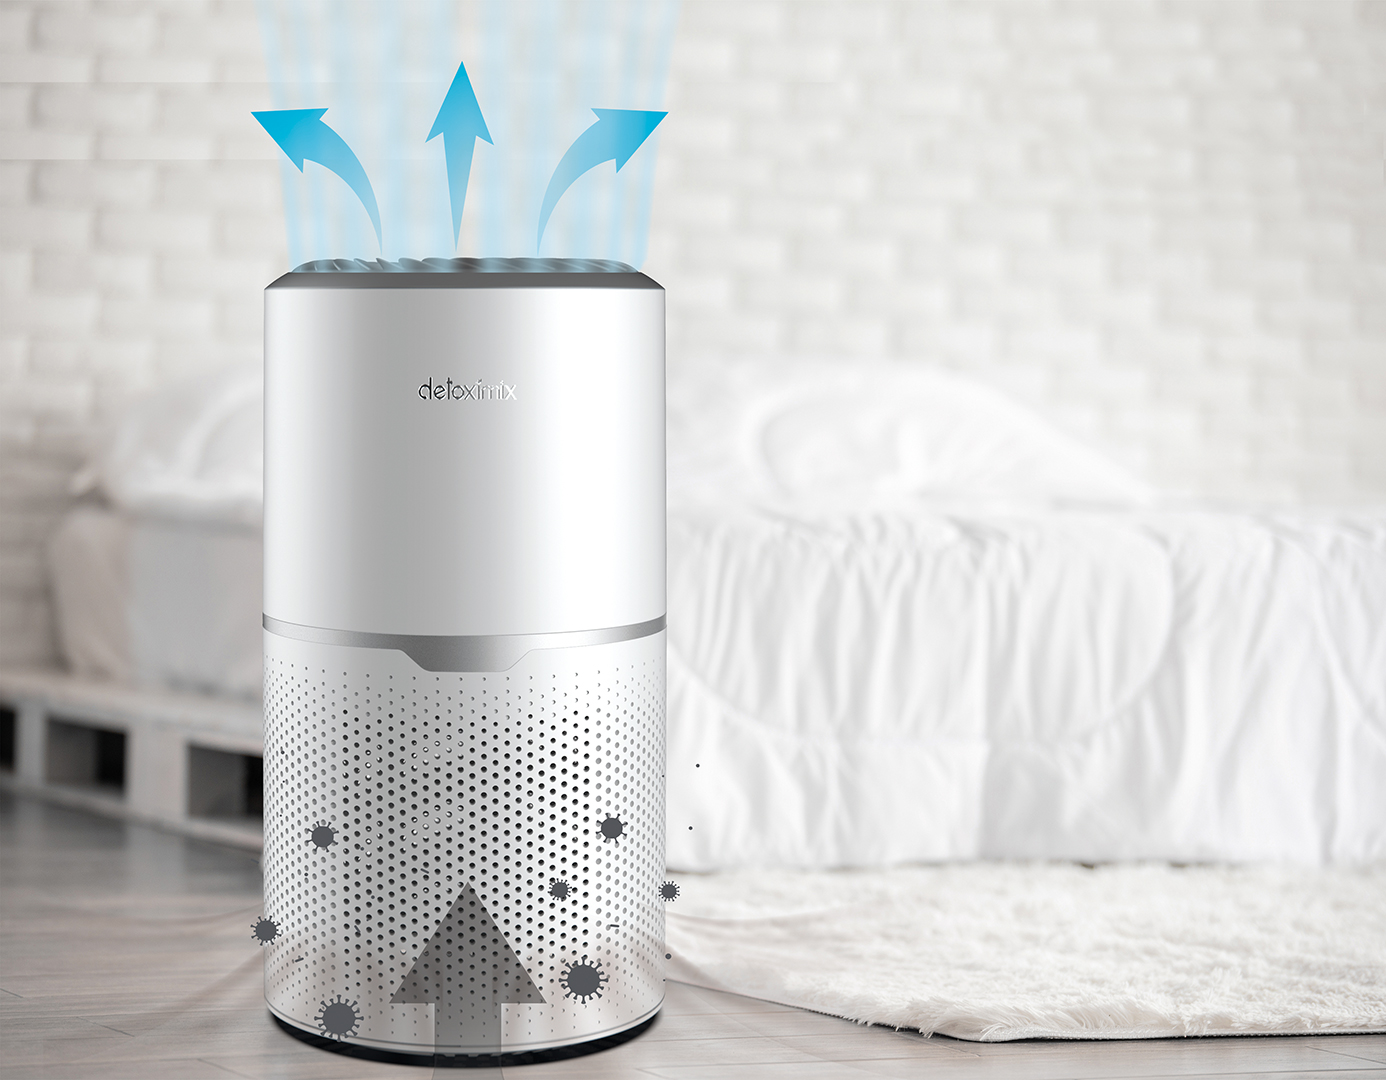 360 ° suction and diffusion air purifier detoximix